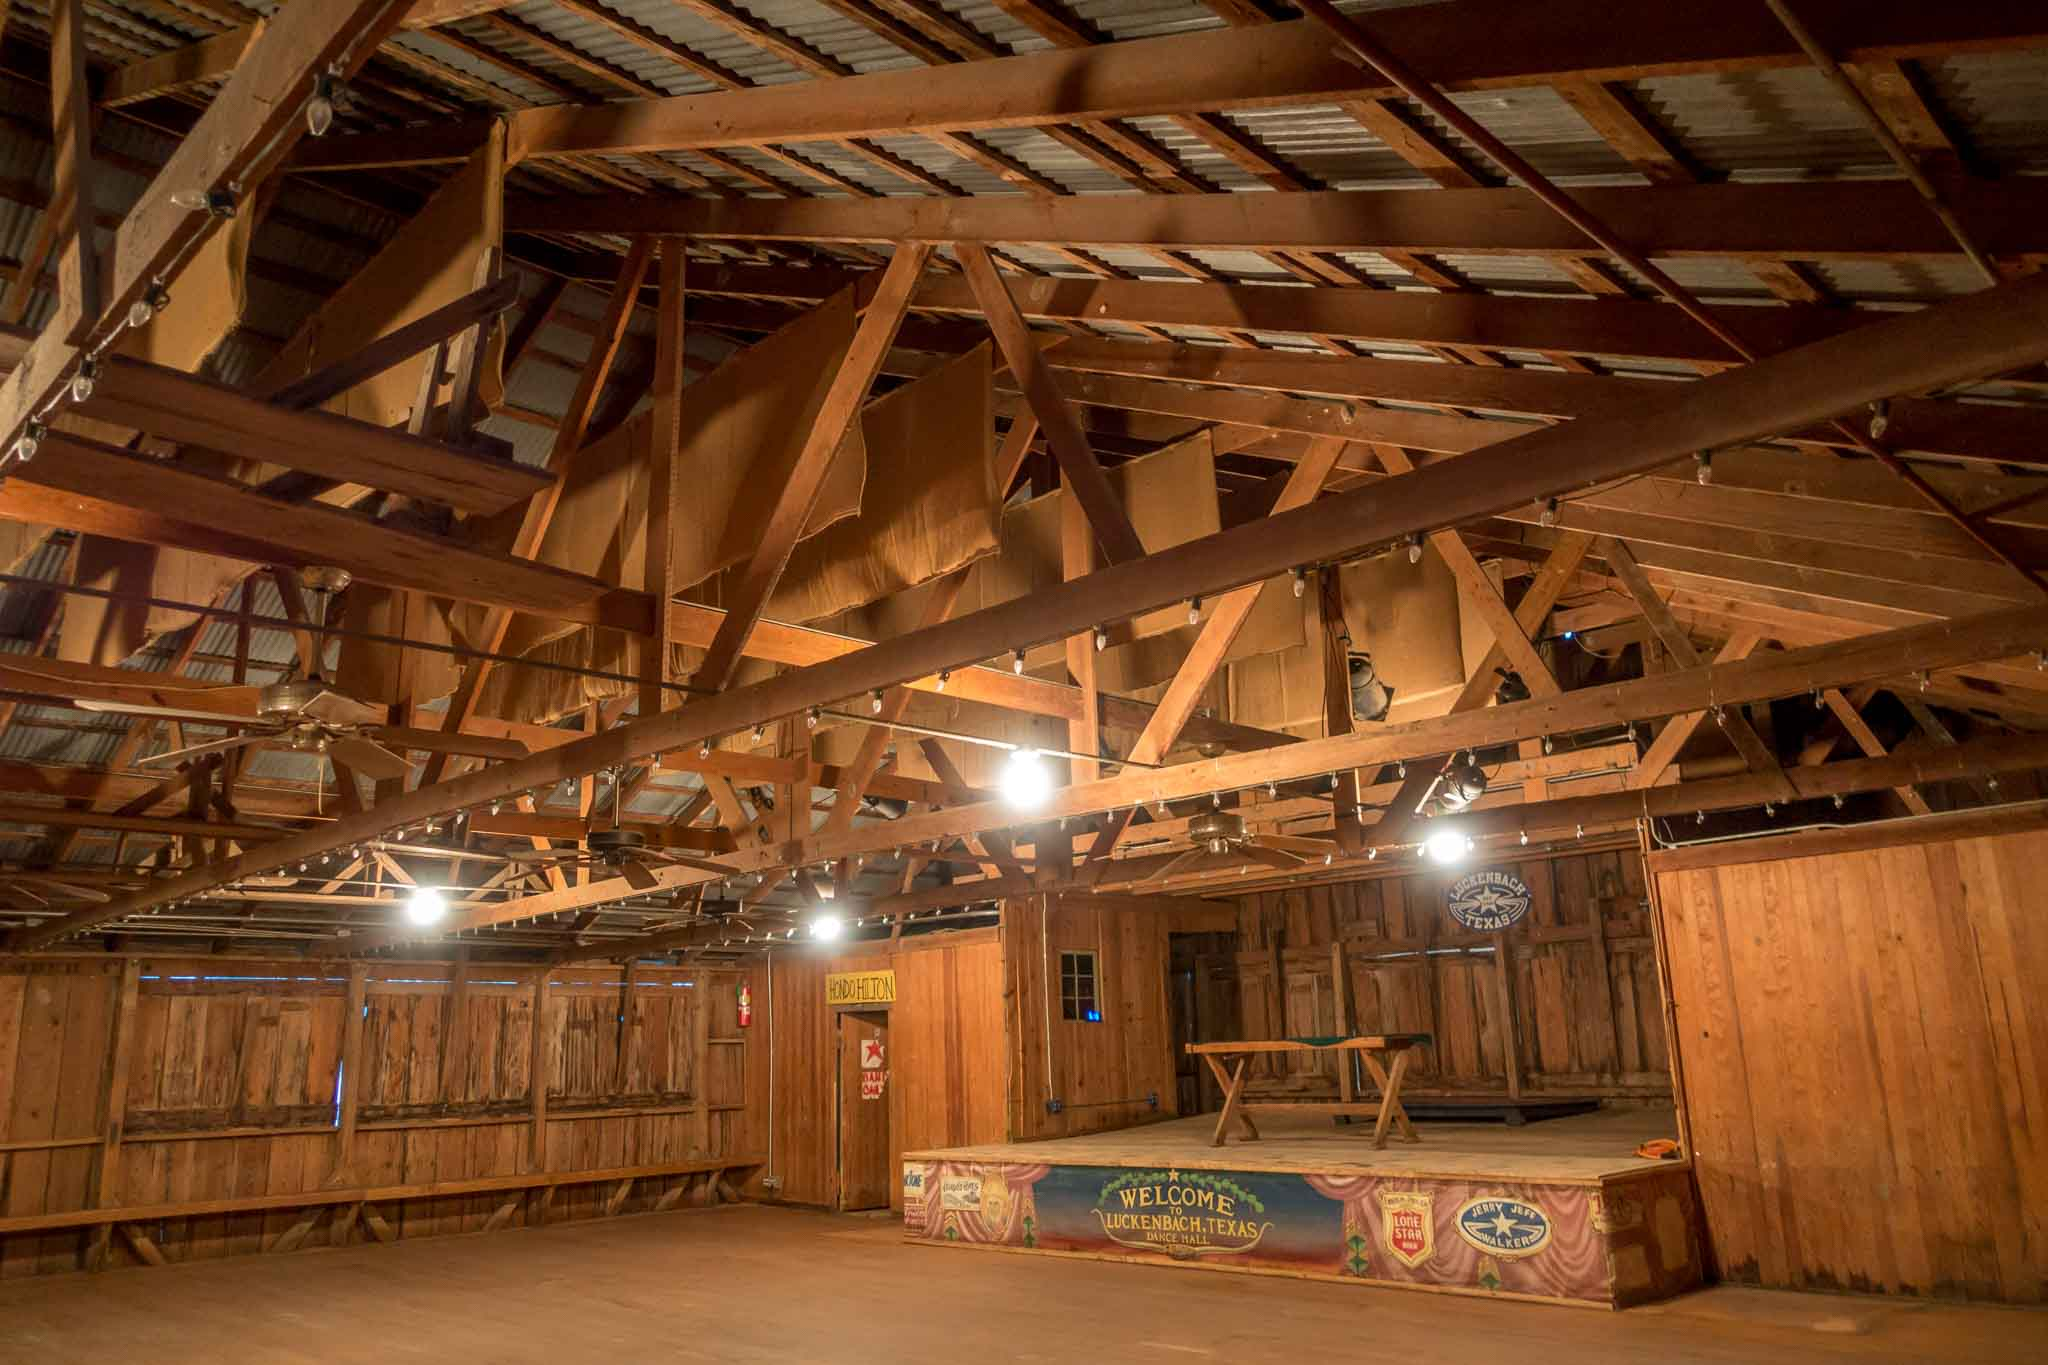 Empty dance hall with stage